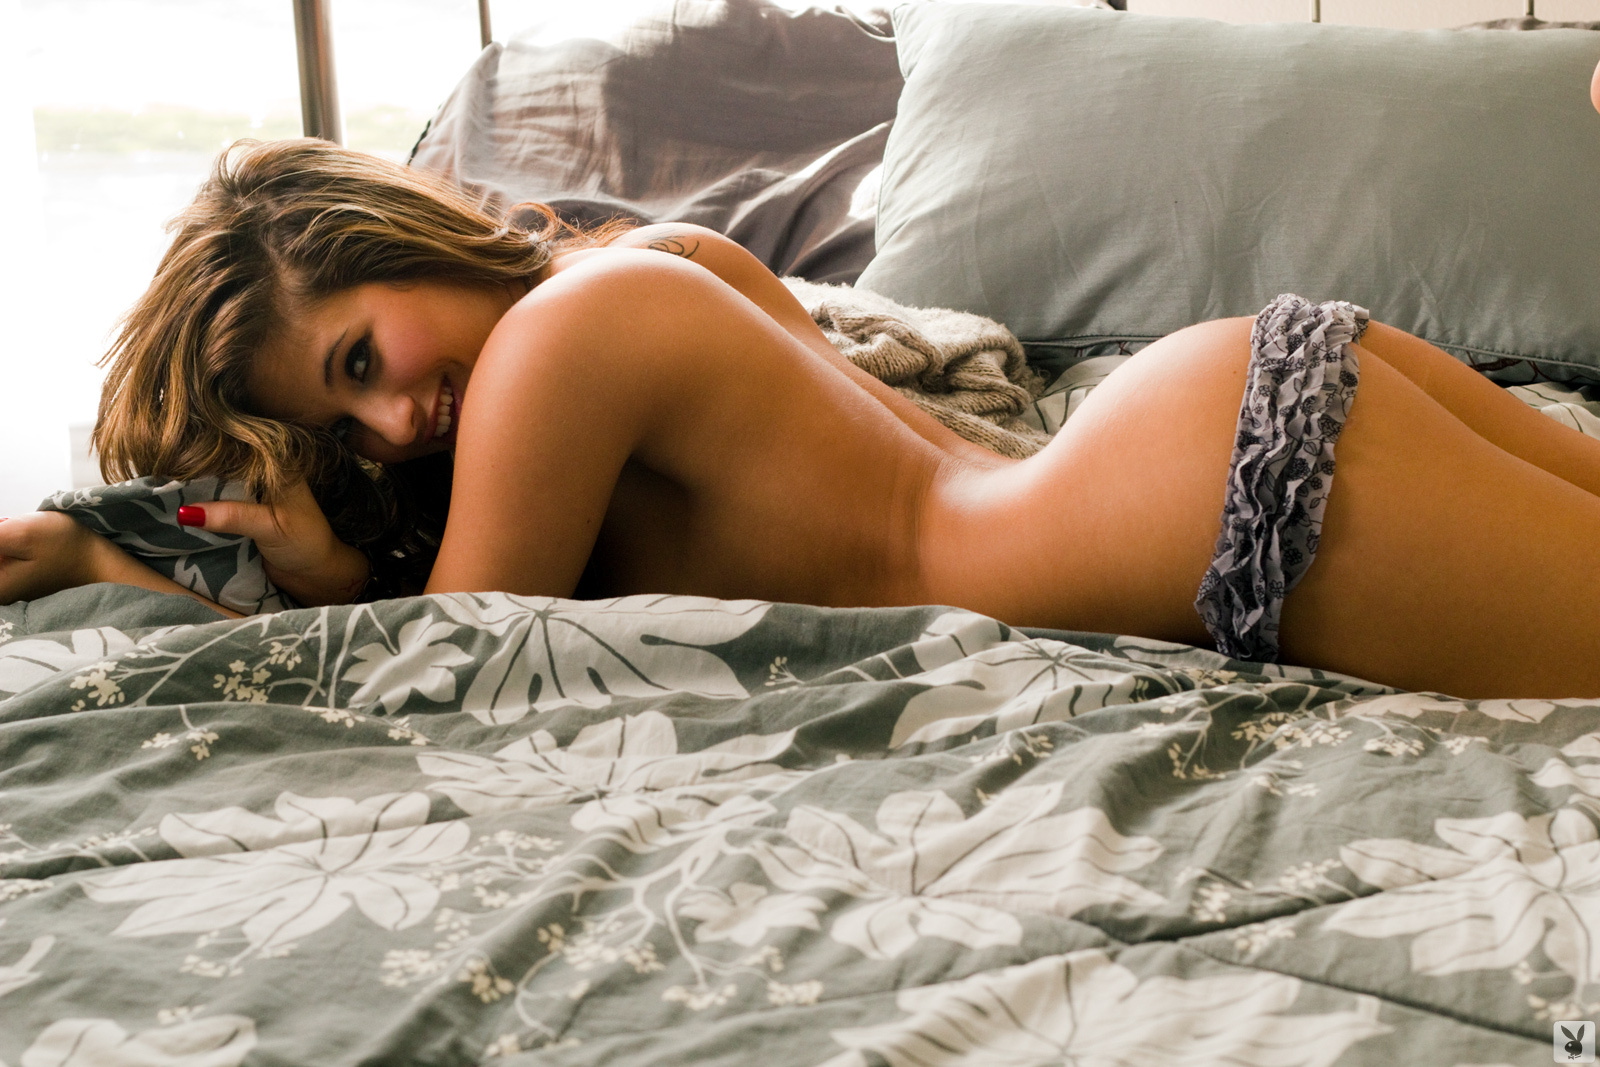 Kaitlin naked, hot girls gone wield videos